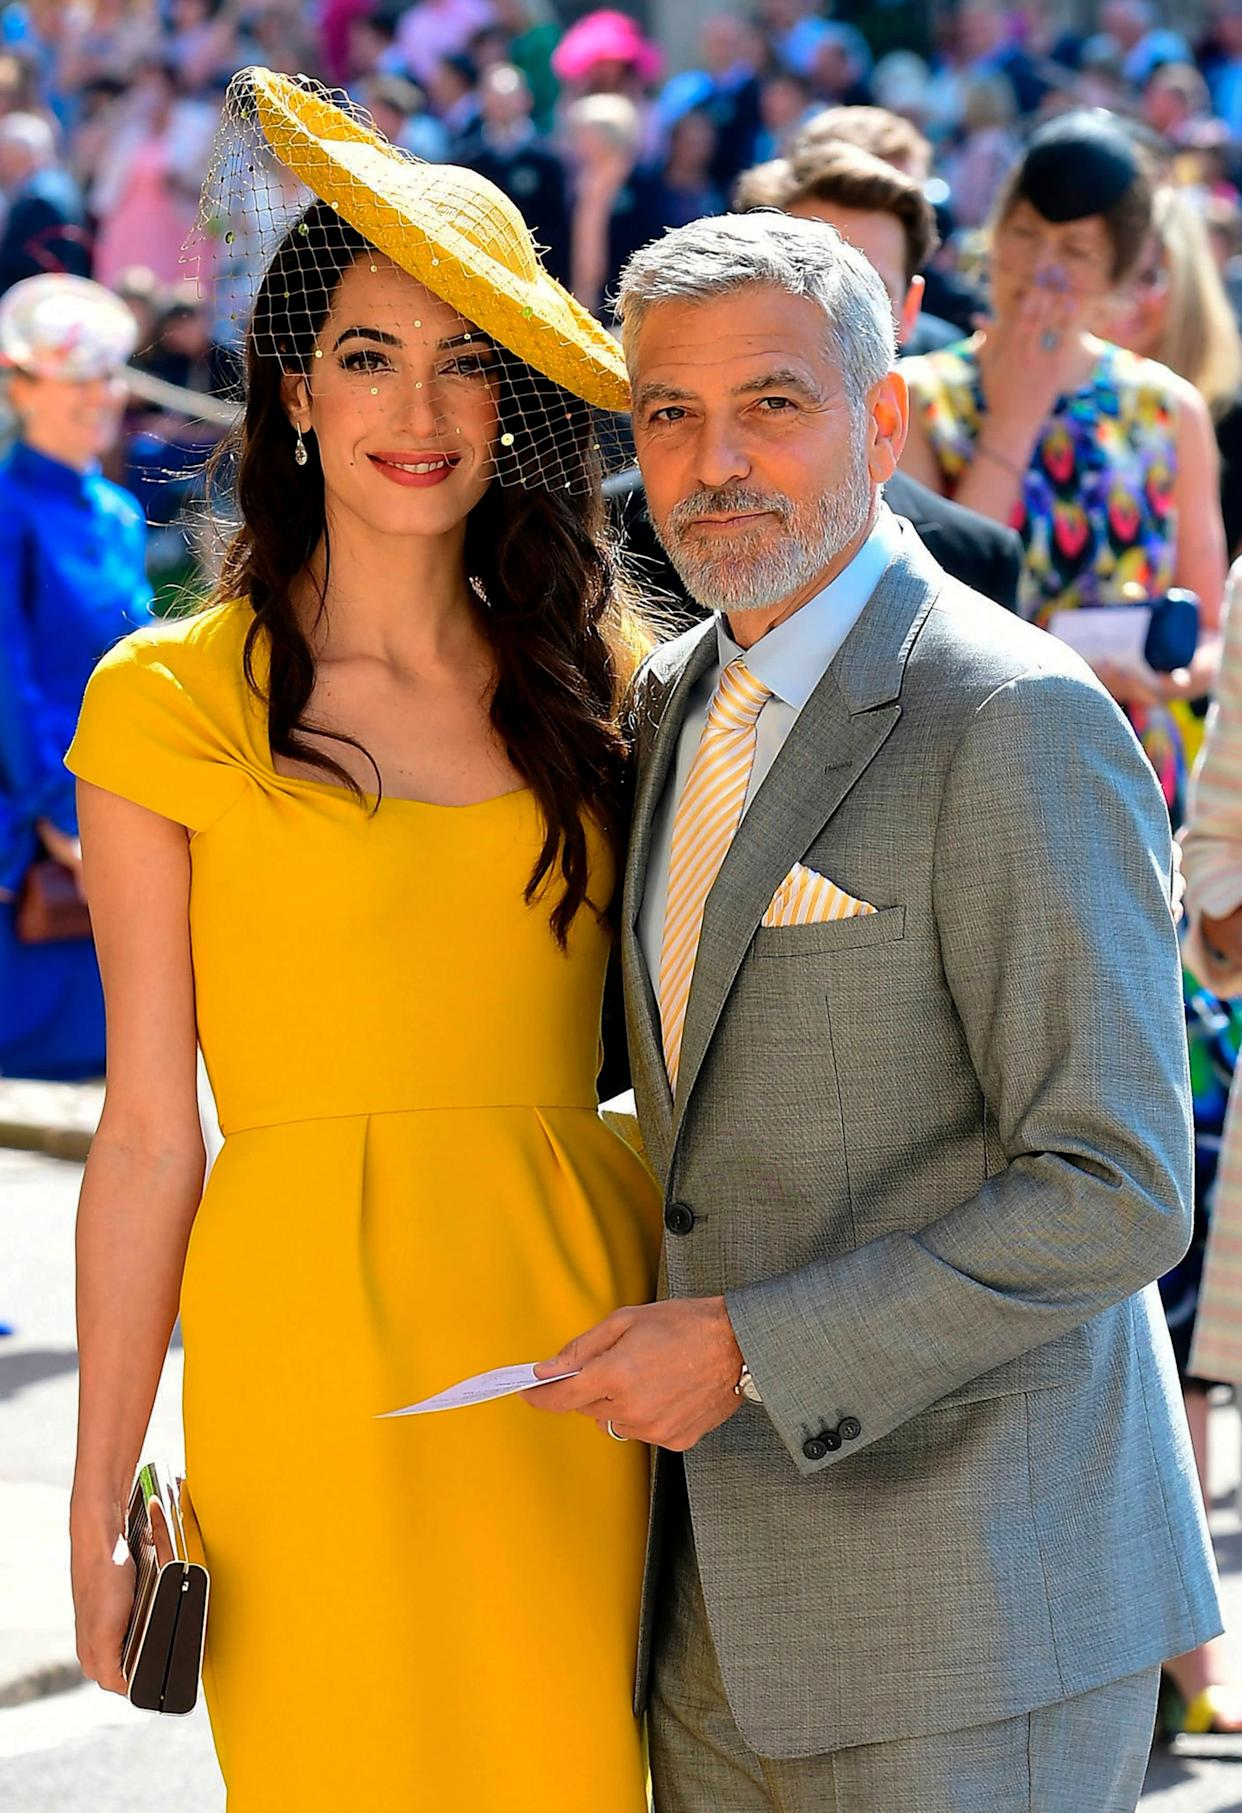 Amal and George Clooney pose together on the day of the royal wedding at St George's Chapel, Windsor Castle, in Windsor, on May 19. (Photo: IAN WEST via Getty Images)